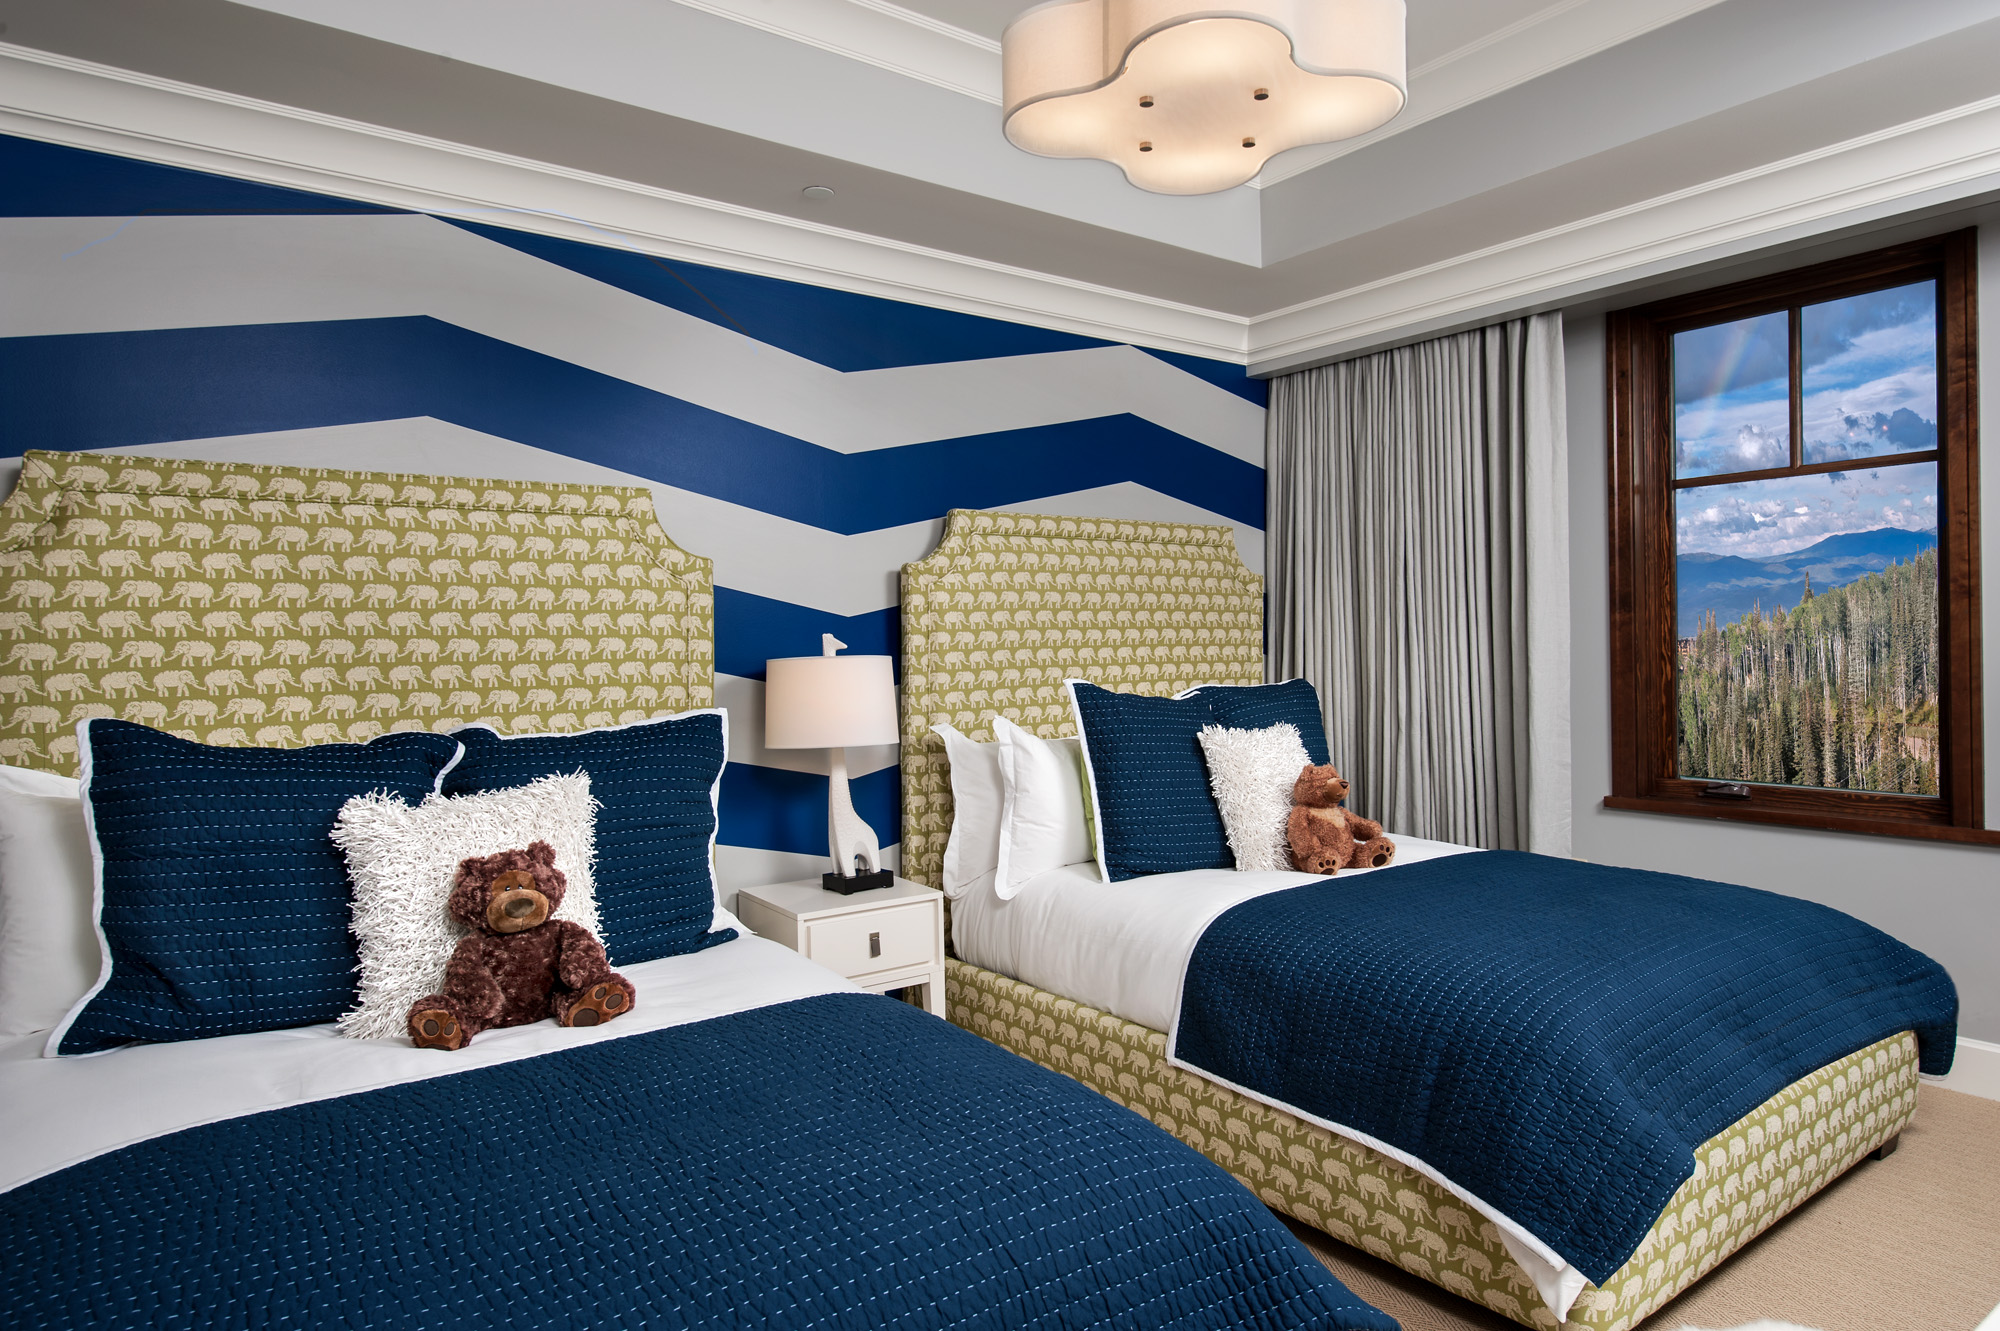 Navy & Green Kids Room with Chevron Accent Wall and Upholstered Beds by McBrien Interiors